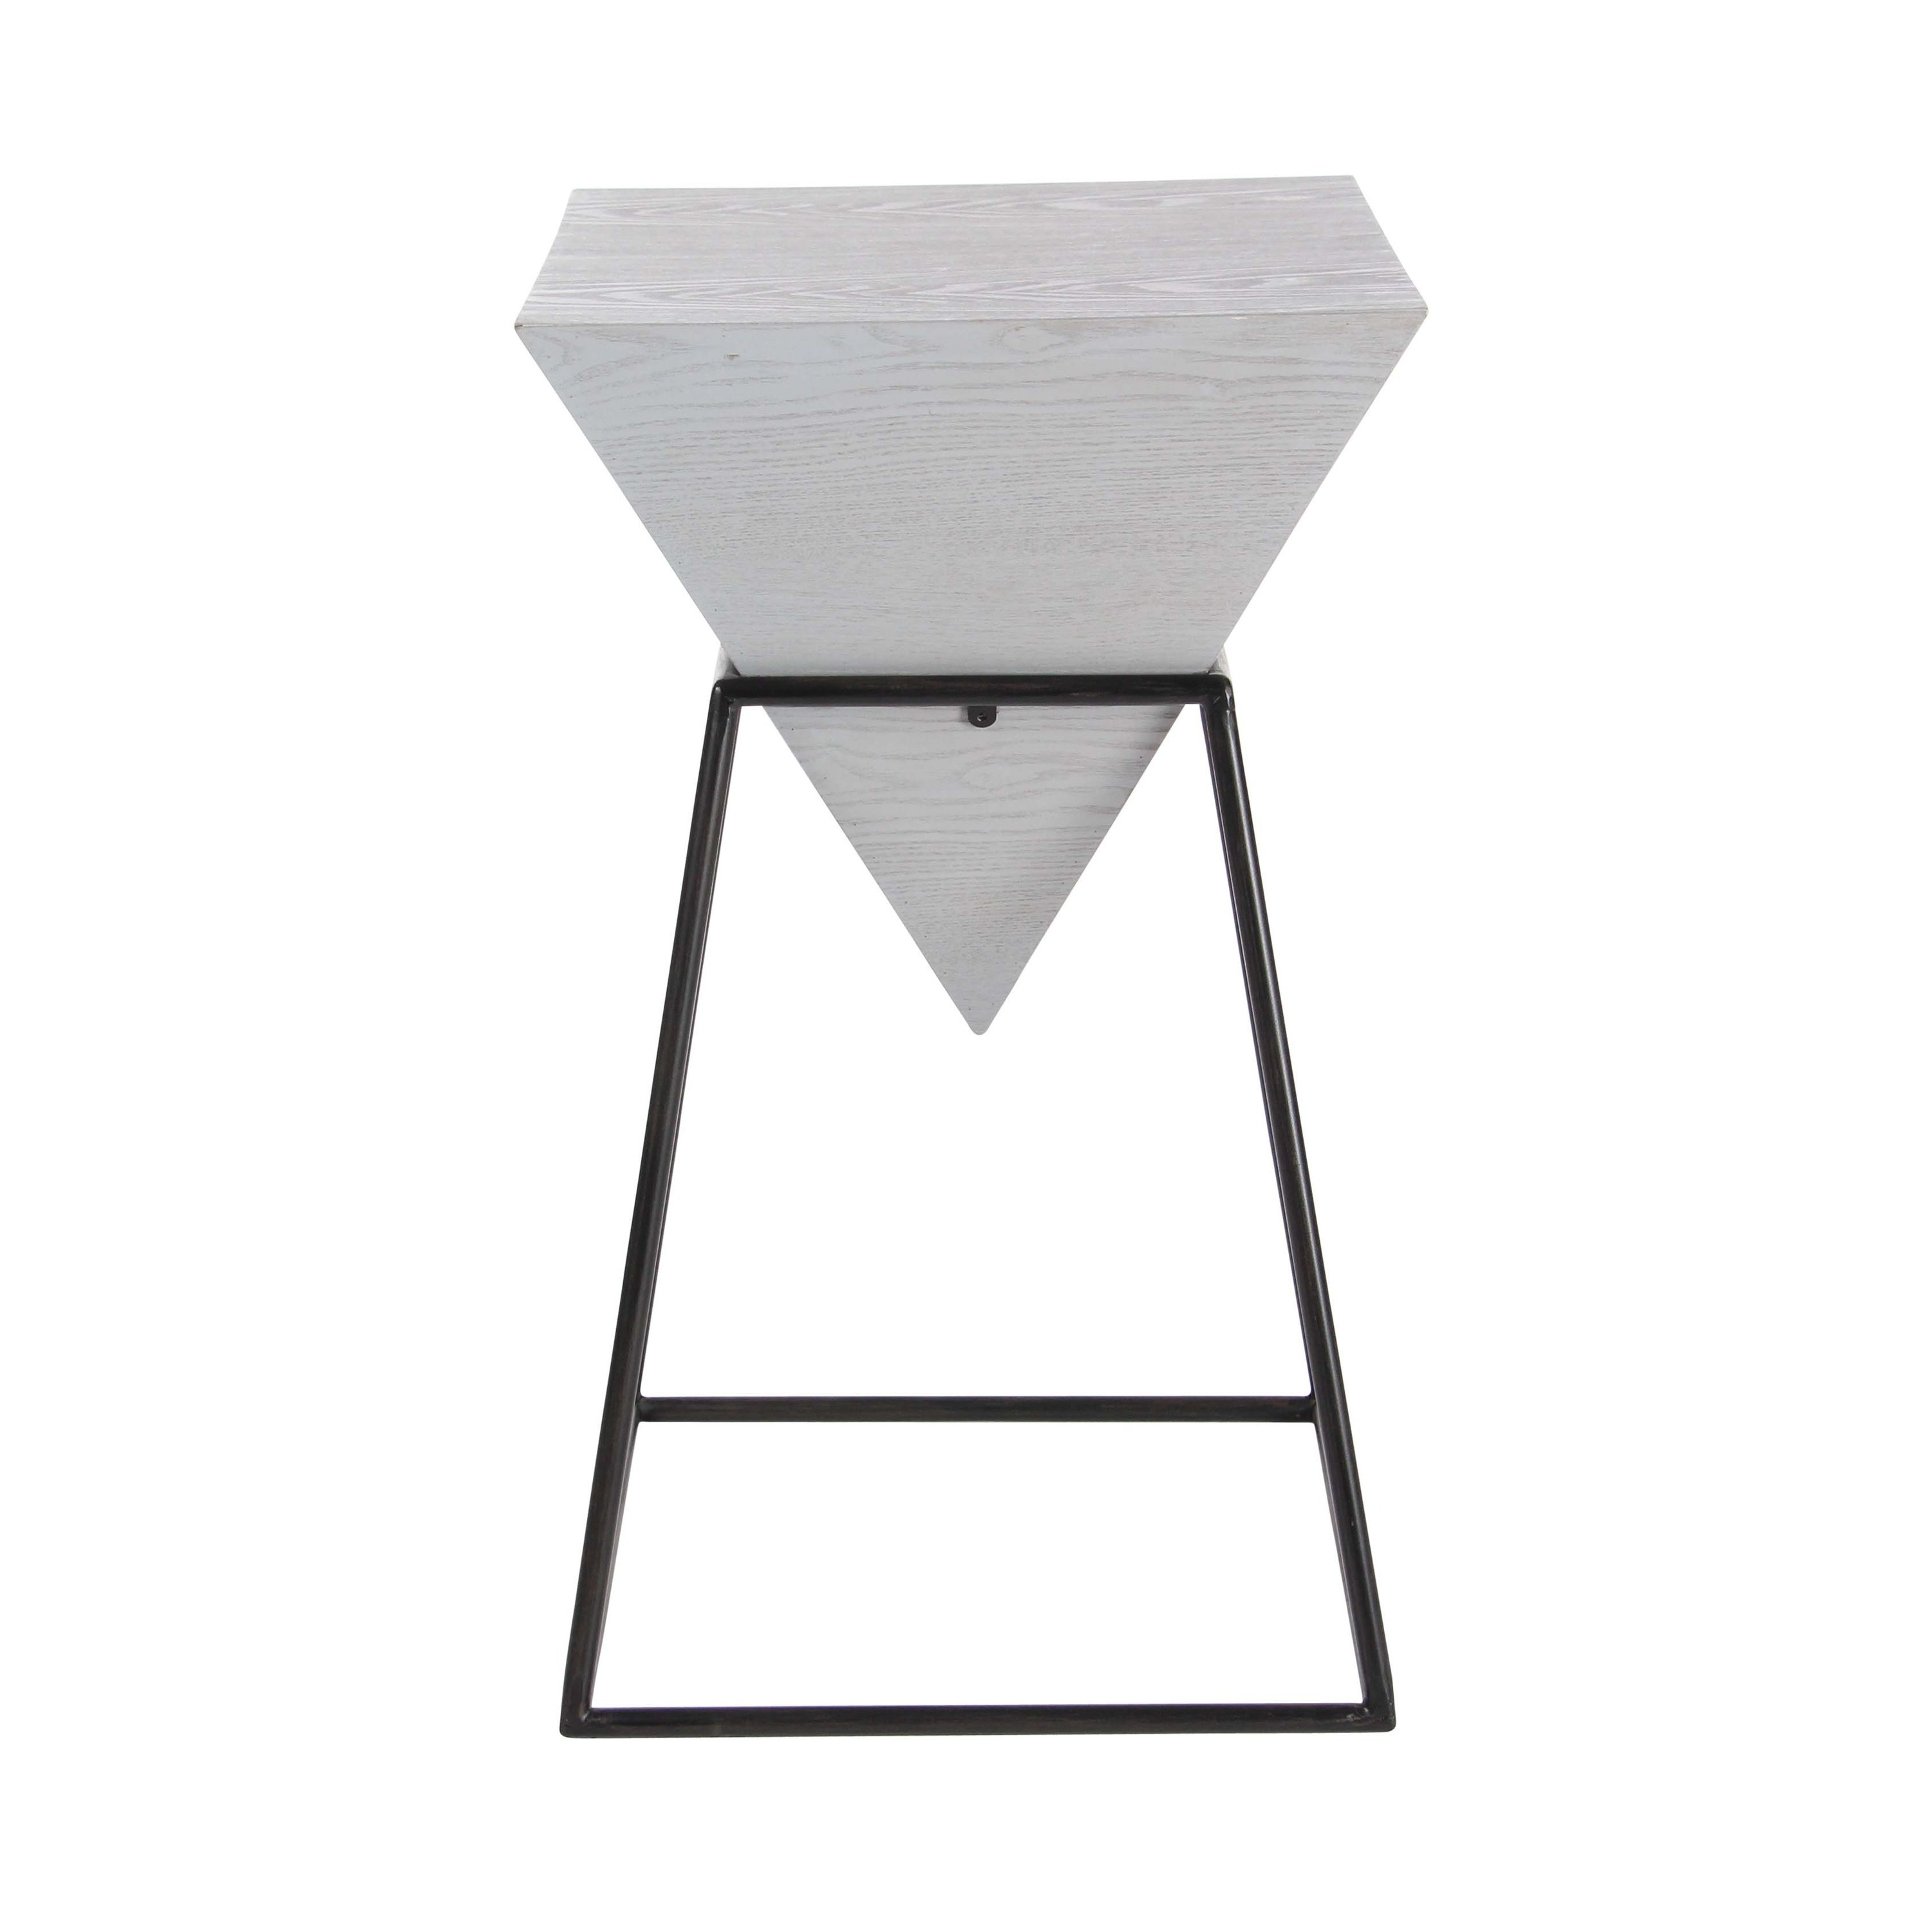 modern inch gray wood and iron accent table studio vanora free shipping today couch covers target black end tables round patio chair display coffee ikea with storage baskets